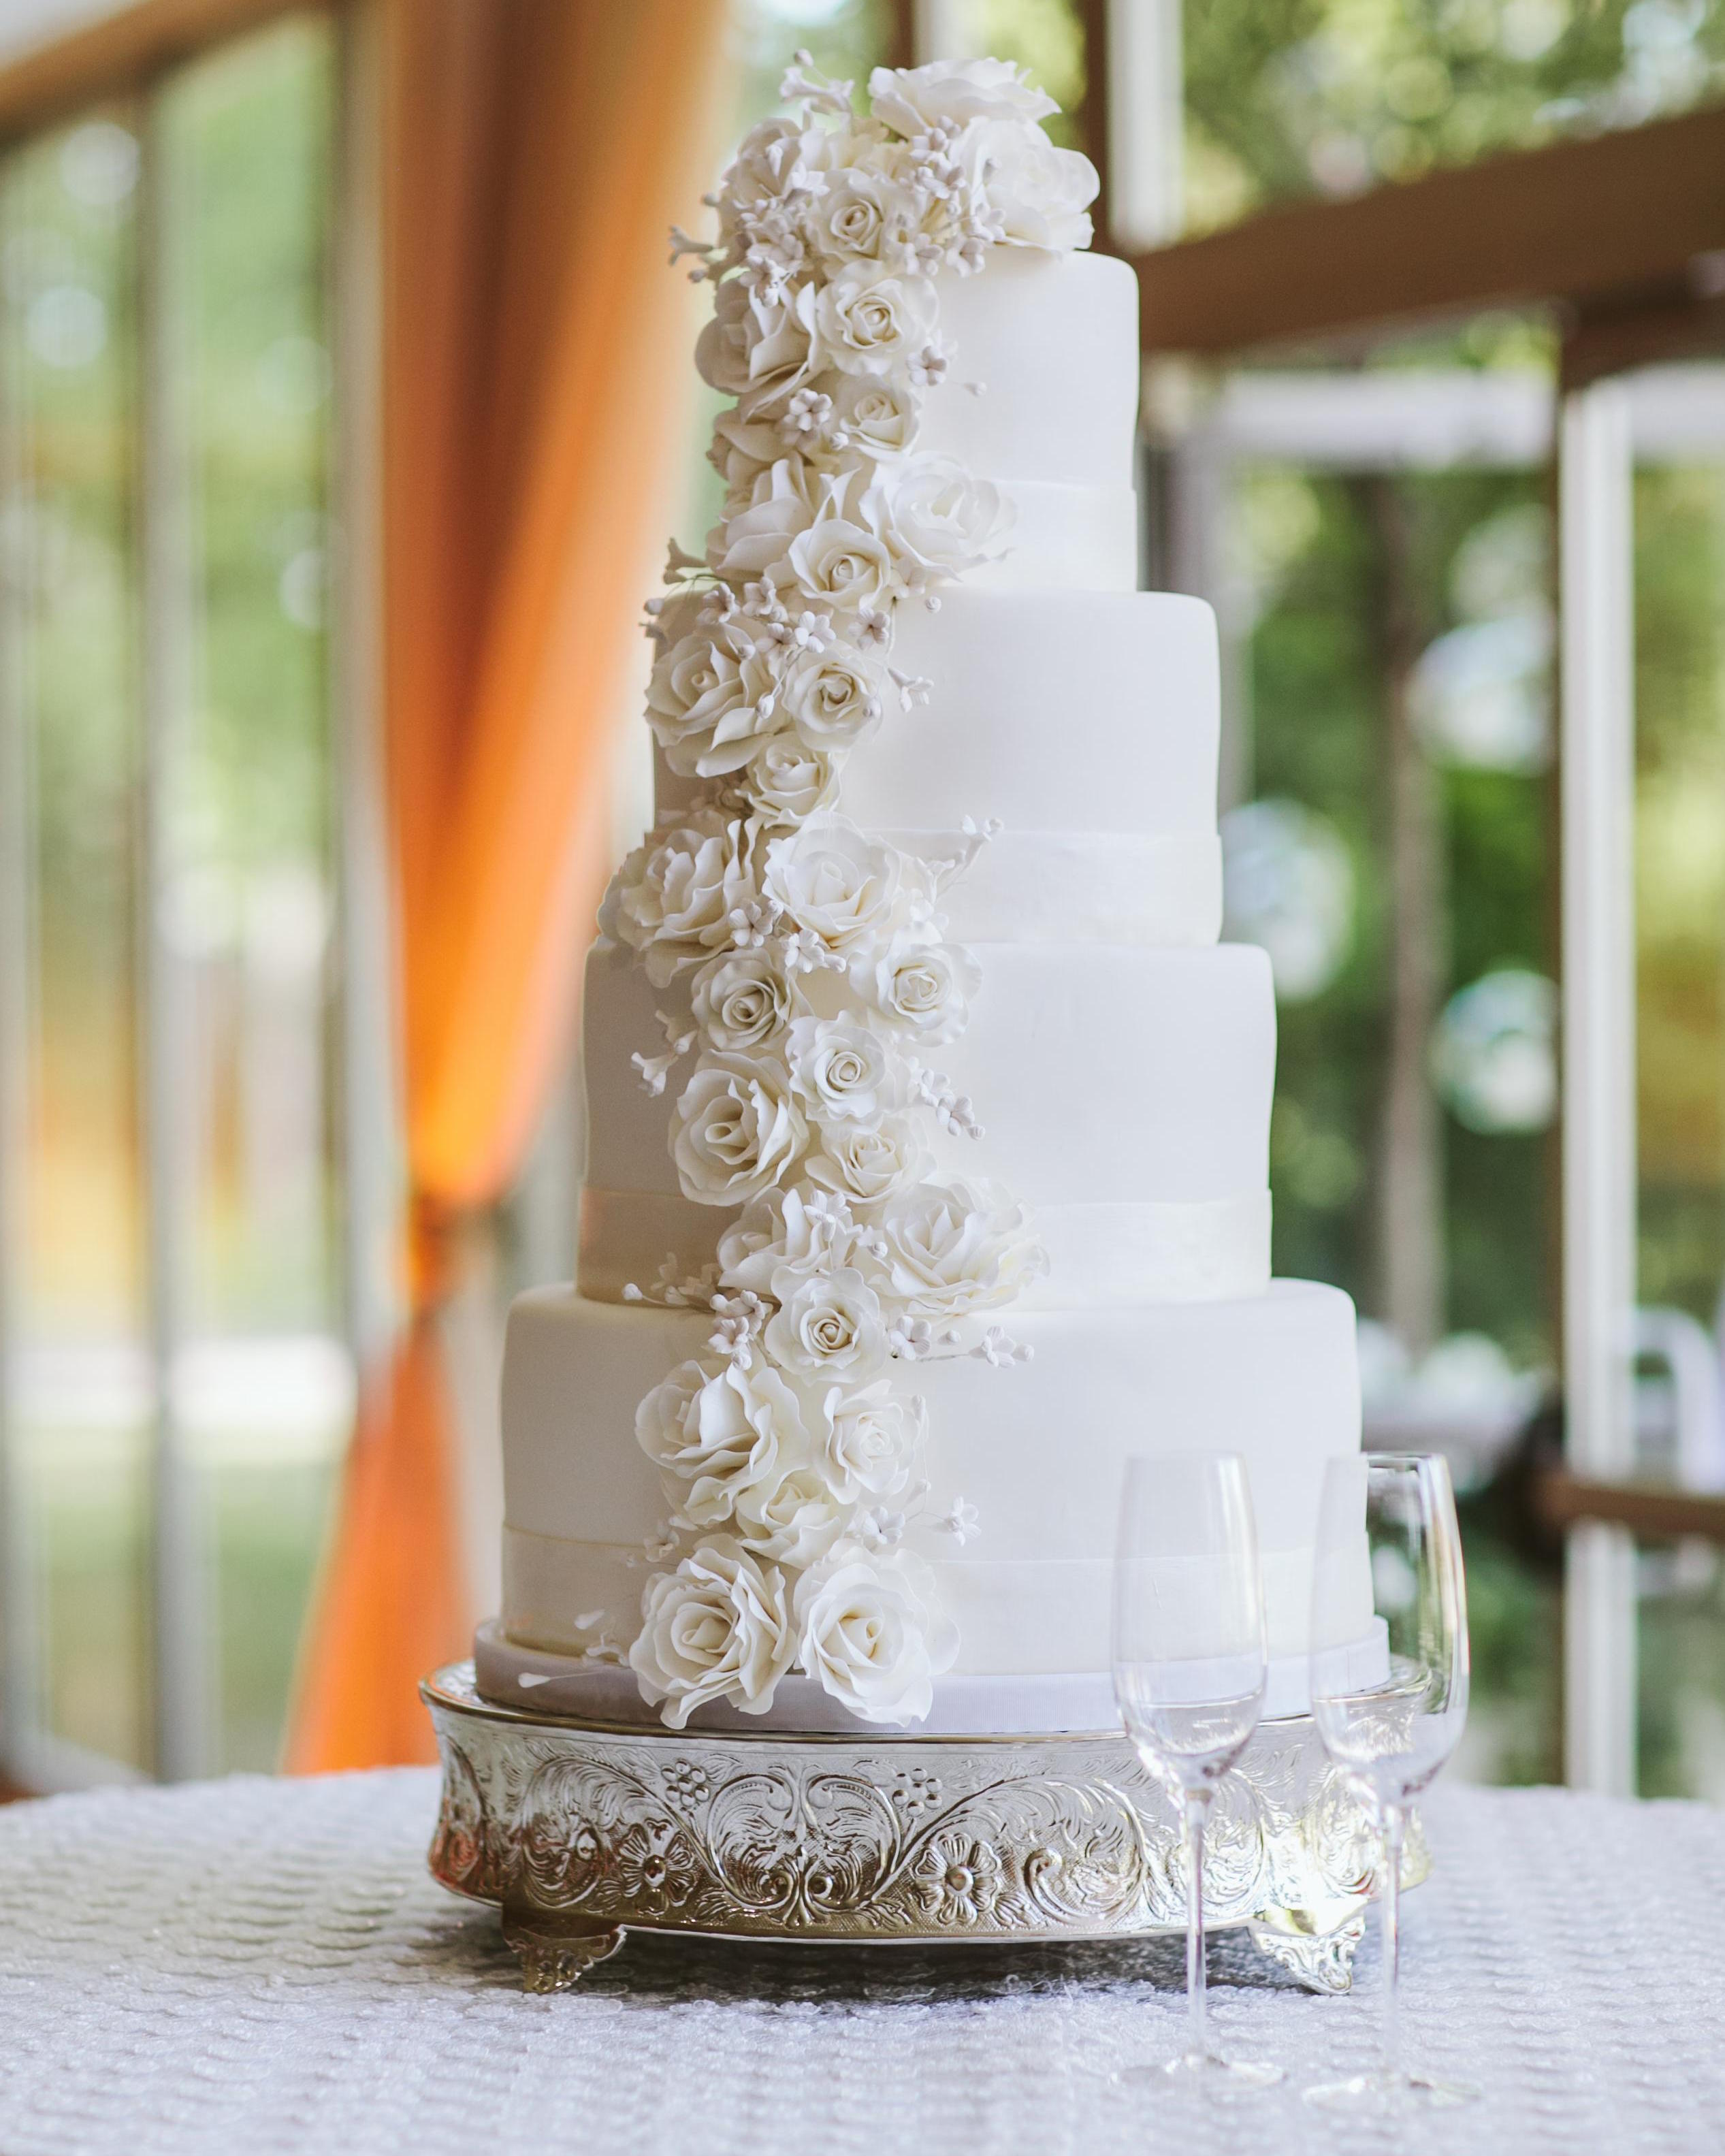 Tall white wedding cake with sugar flowers